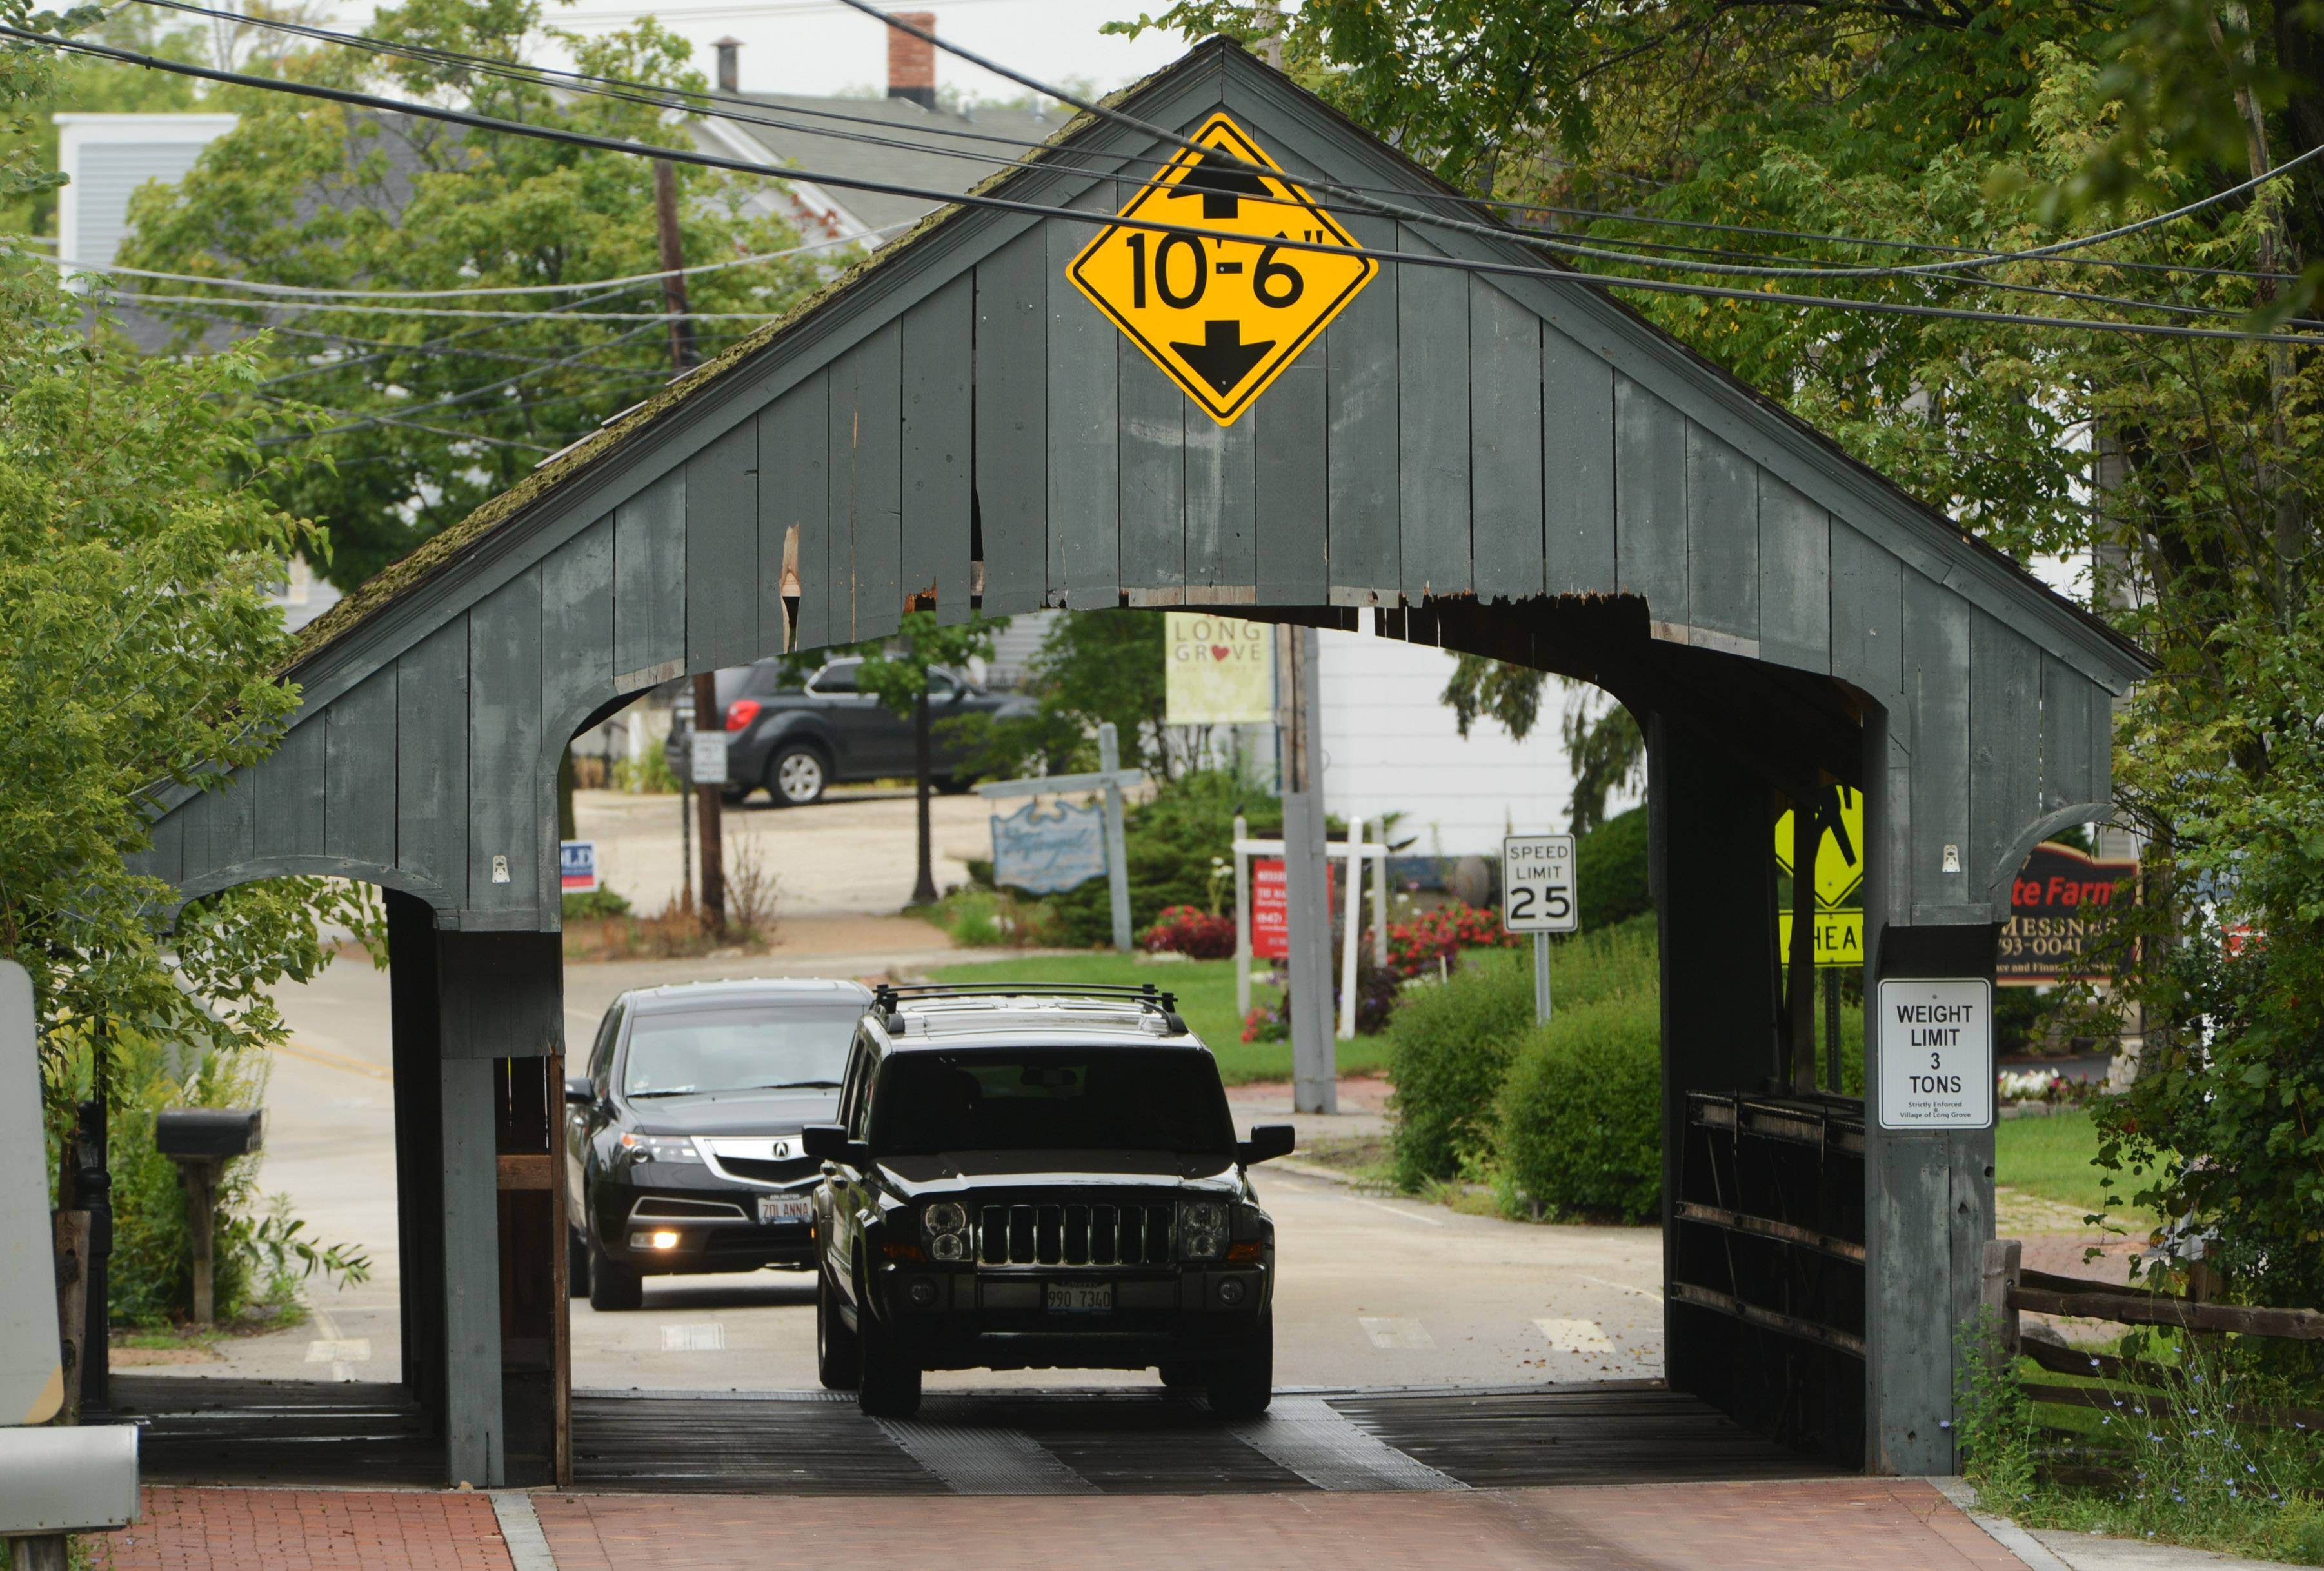 Campaign continues to save Long Grove covered bridge